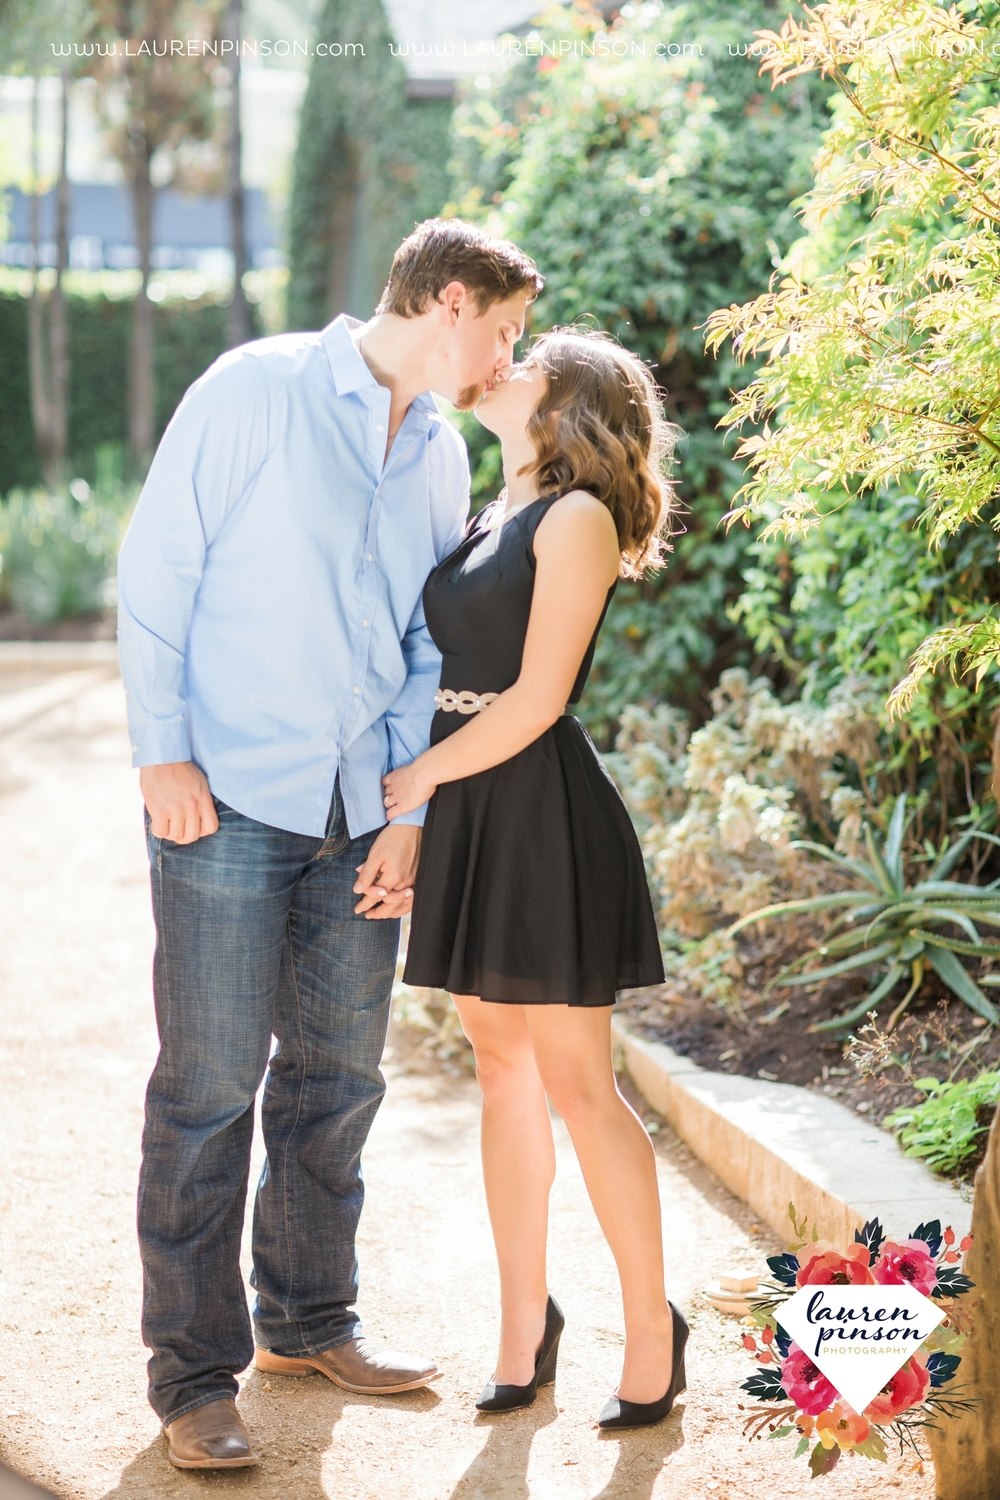 austin-texas-engagement-session-photography-by-wichita-falls-wedding-photgraphy-lauren-pinson_1389.jpg